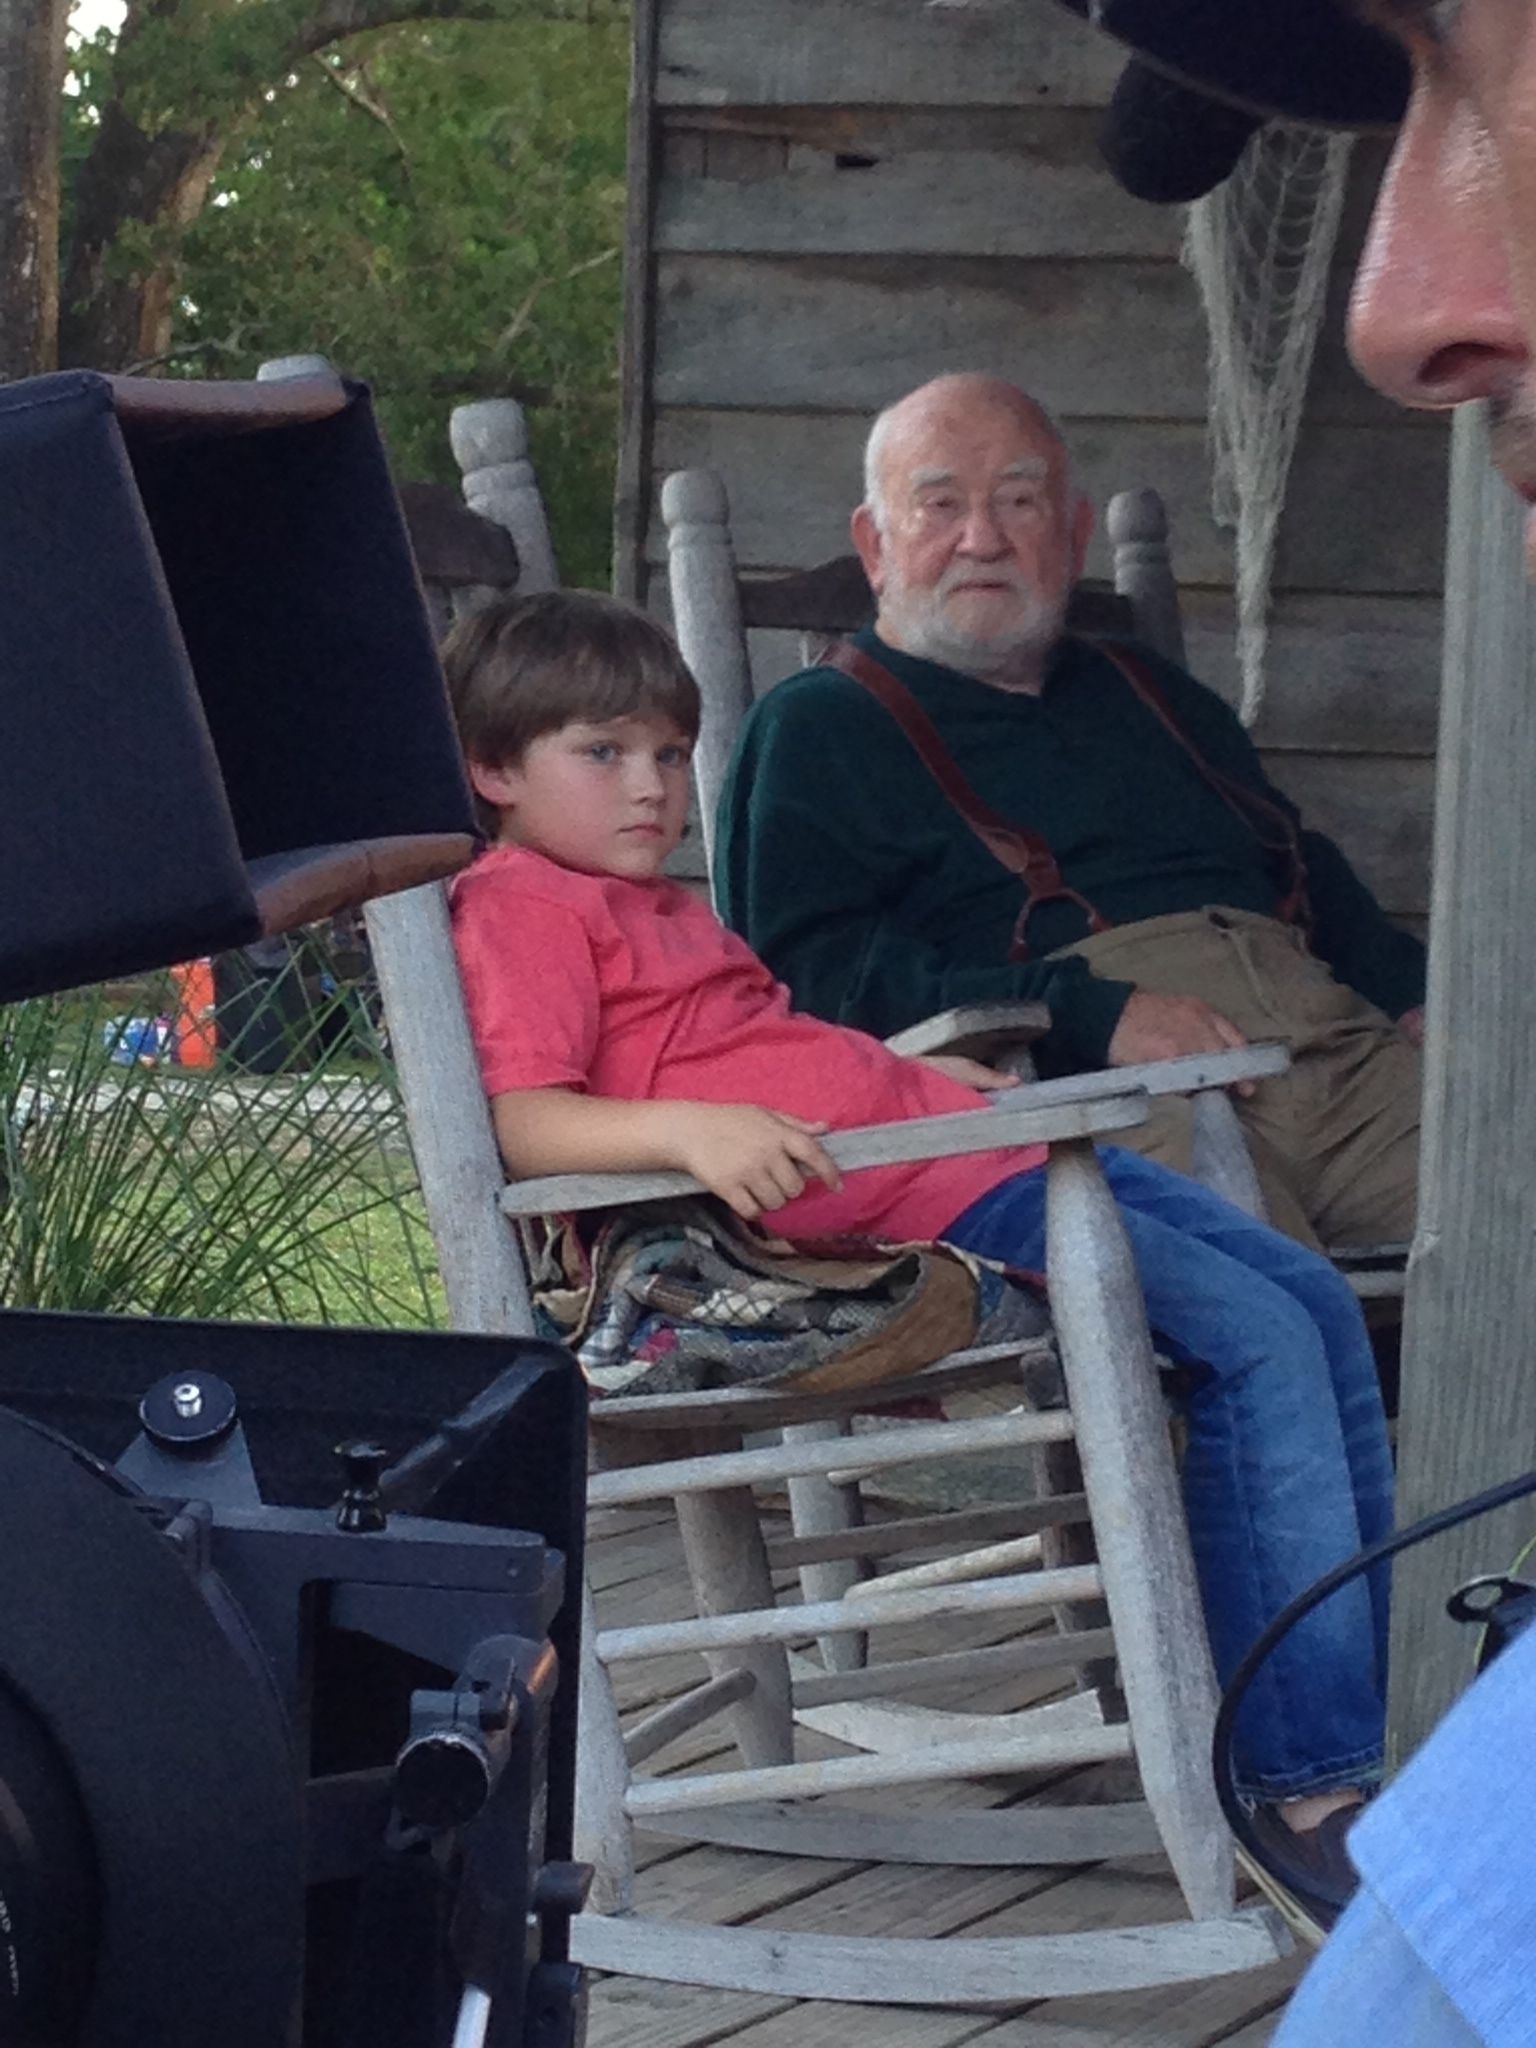 """Brody Rose with Ed Asner on the set of """"Christmas on the Bayou"""". http://www.mylifetime.com/movies/christmas-on-the-bayou    http://www.imdb.com/name/nm2656225/?ref_=nmmd_md_nm"""